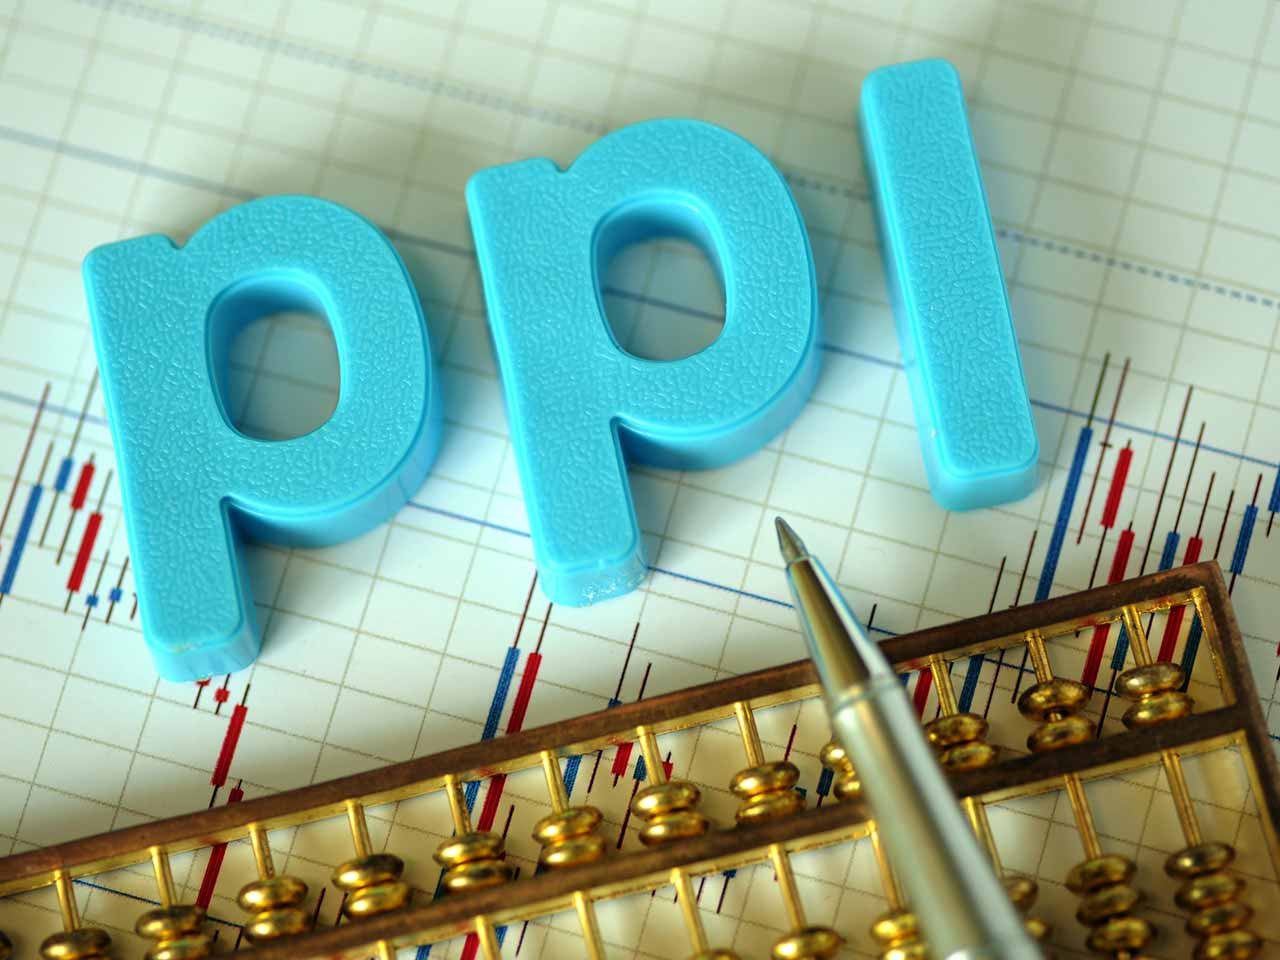 PPI spelt out in plastic letters